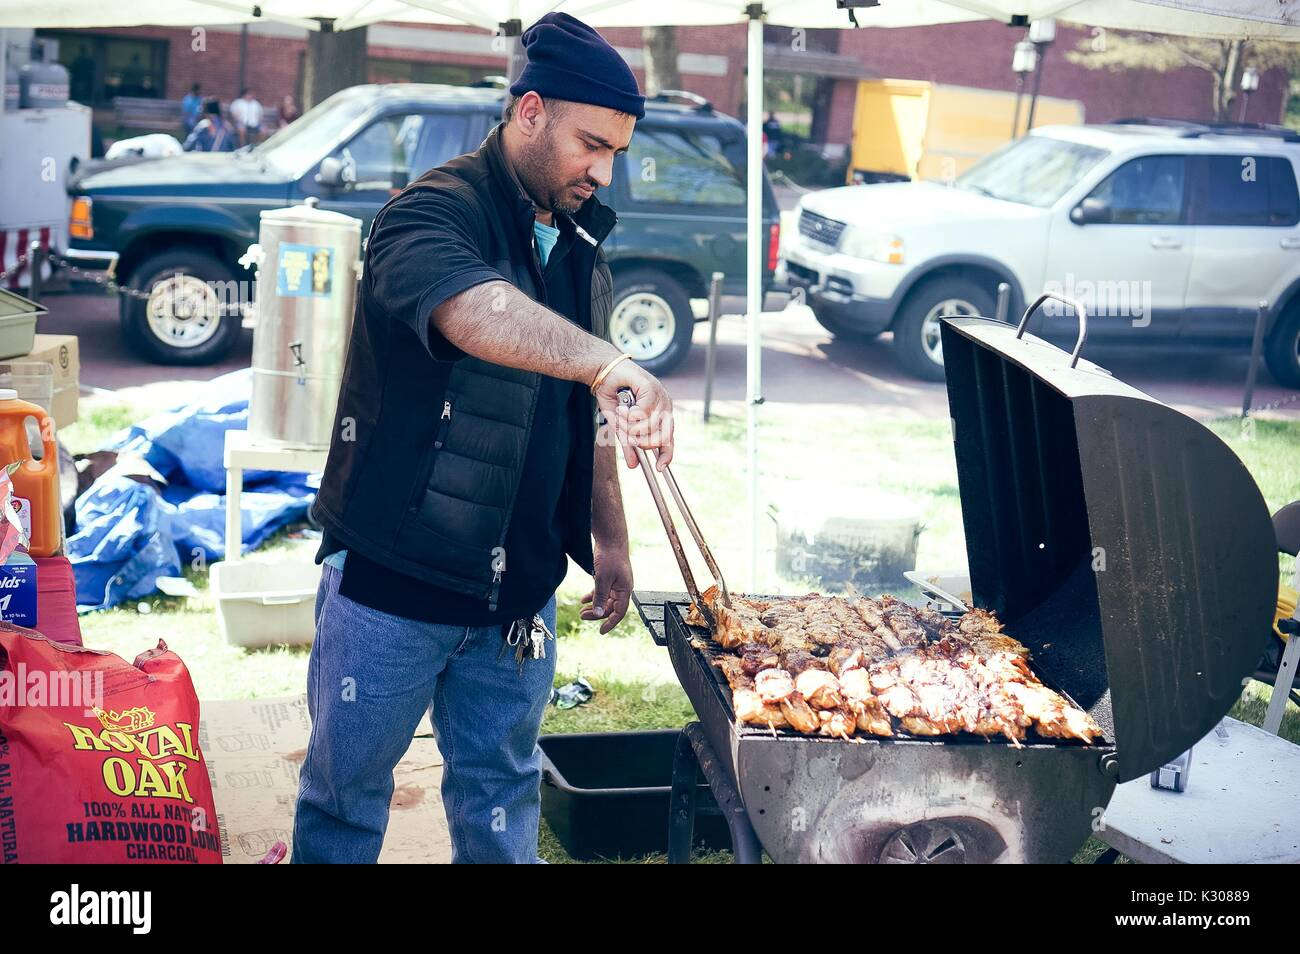 A man wearing beanie and vest stands in front of a grill, cooking chicken on skewers using large tongs, at a food booth during Spring Fair, a student-run spring carnival at Johns Hopkins University, Baltimore, Maryland, April, 2016. Courtesy Eric Chen. - Stock Image